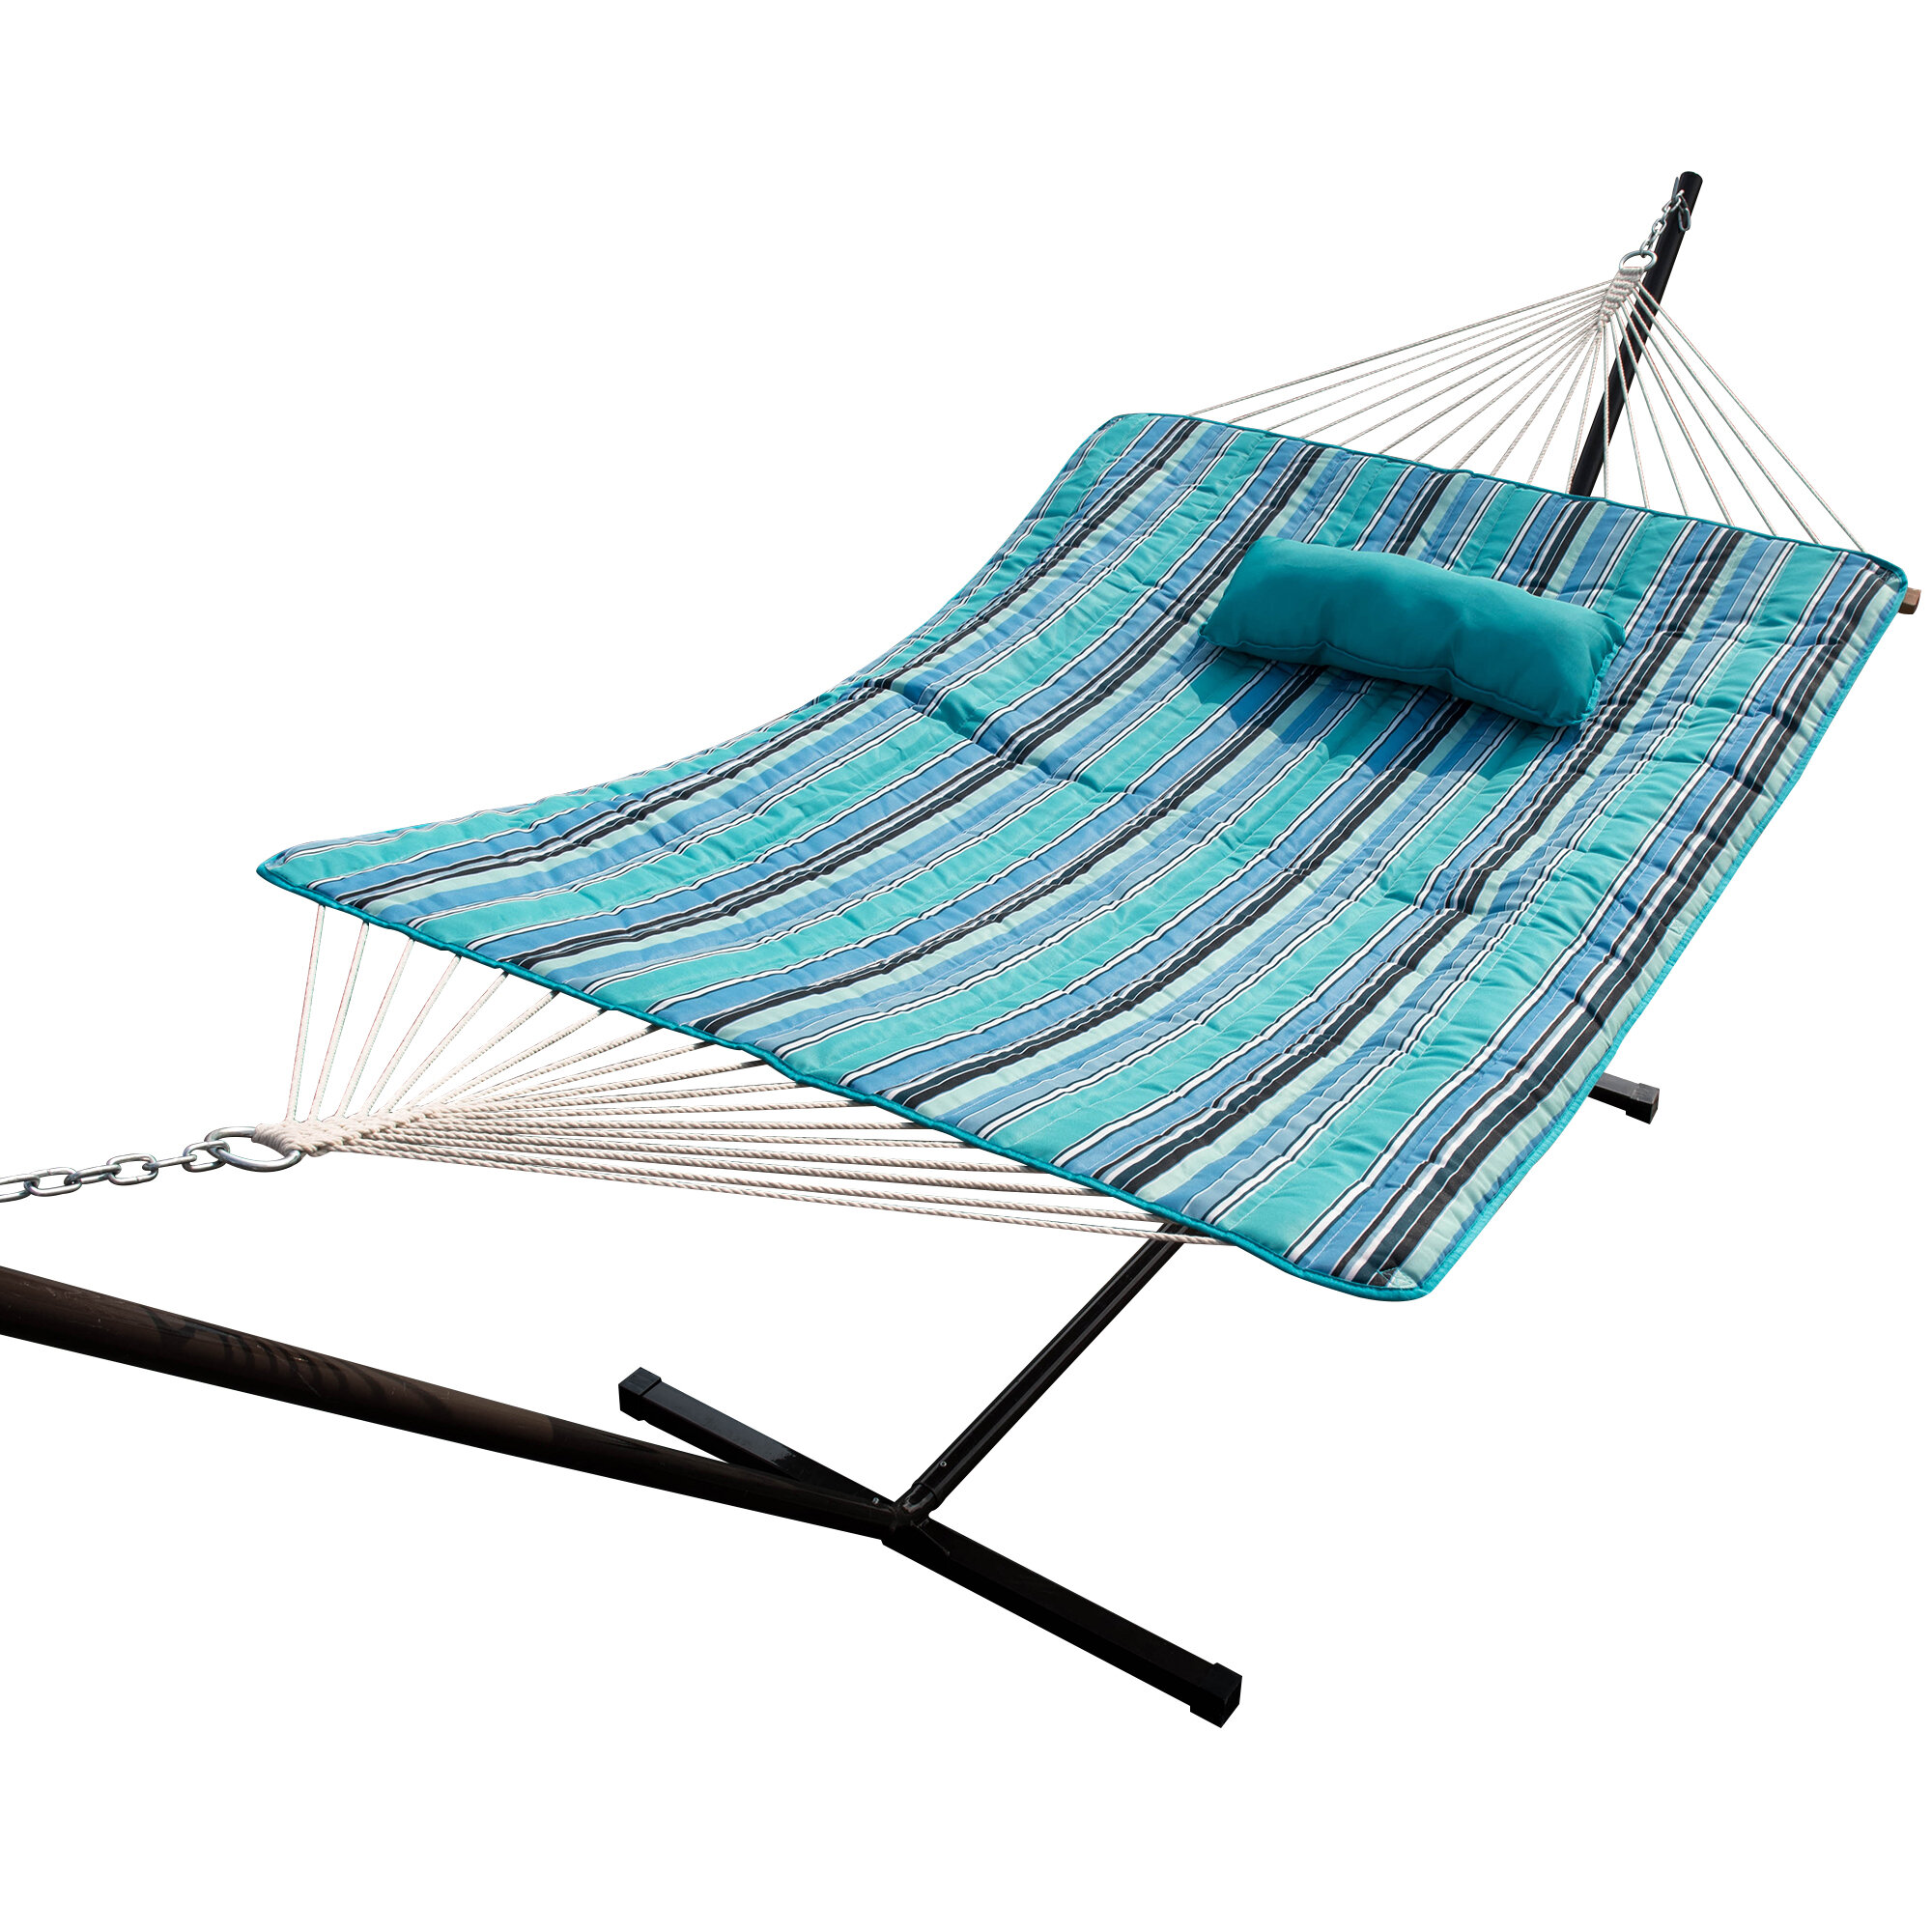 pillow capacity patio hammocks dsc seat with hammock chair daze drink throw lbs footrest and hanging pillows porch white lazy holder lounger swing lazydaze air green large black